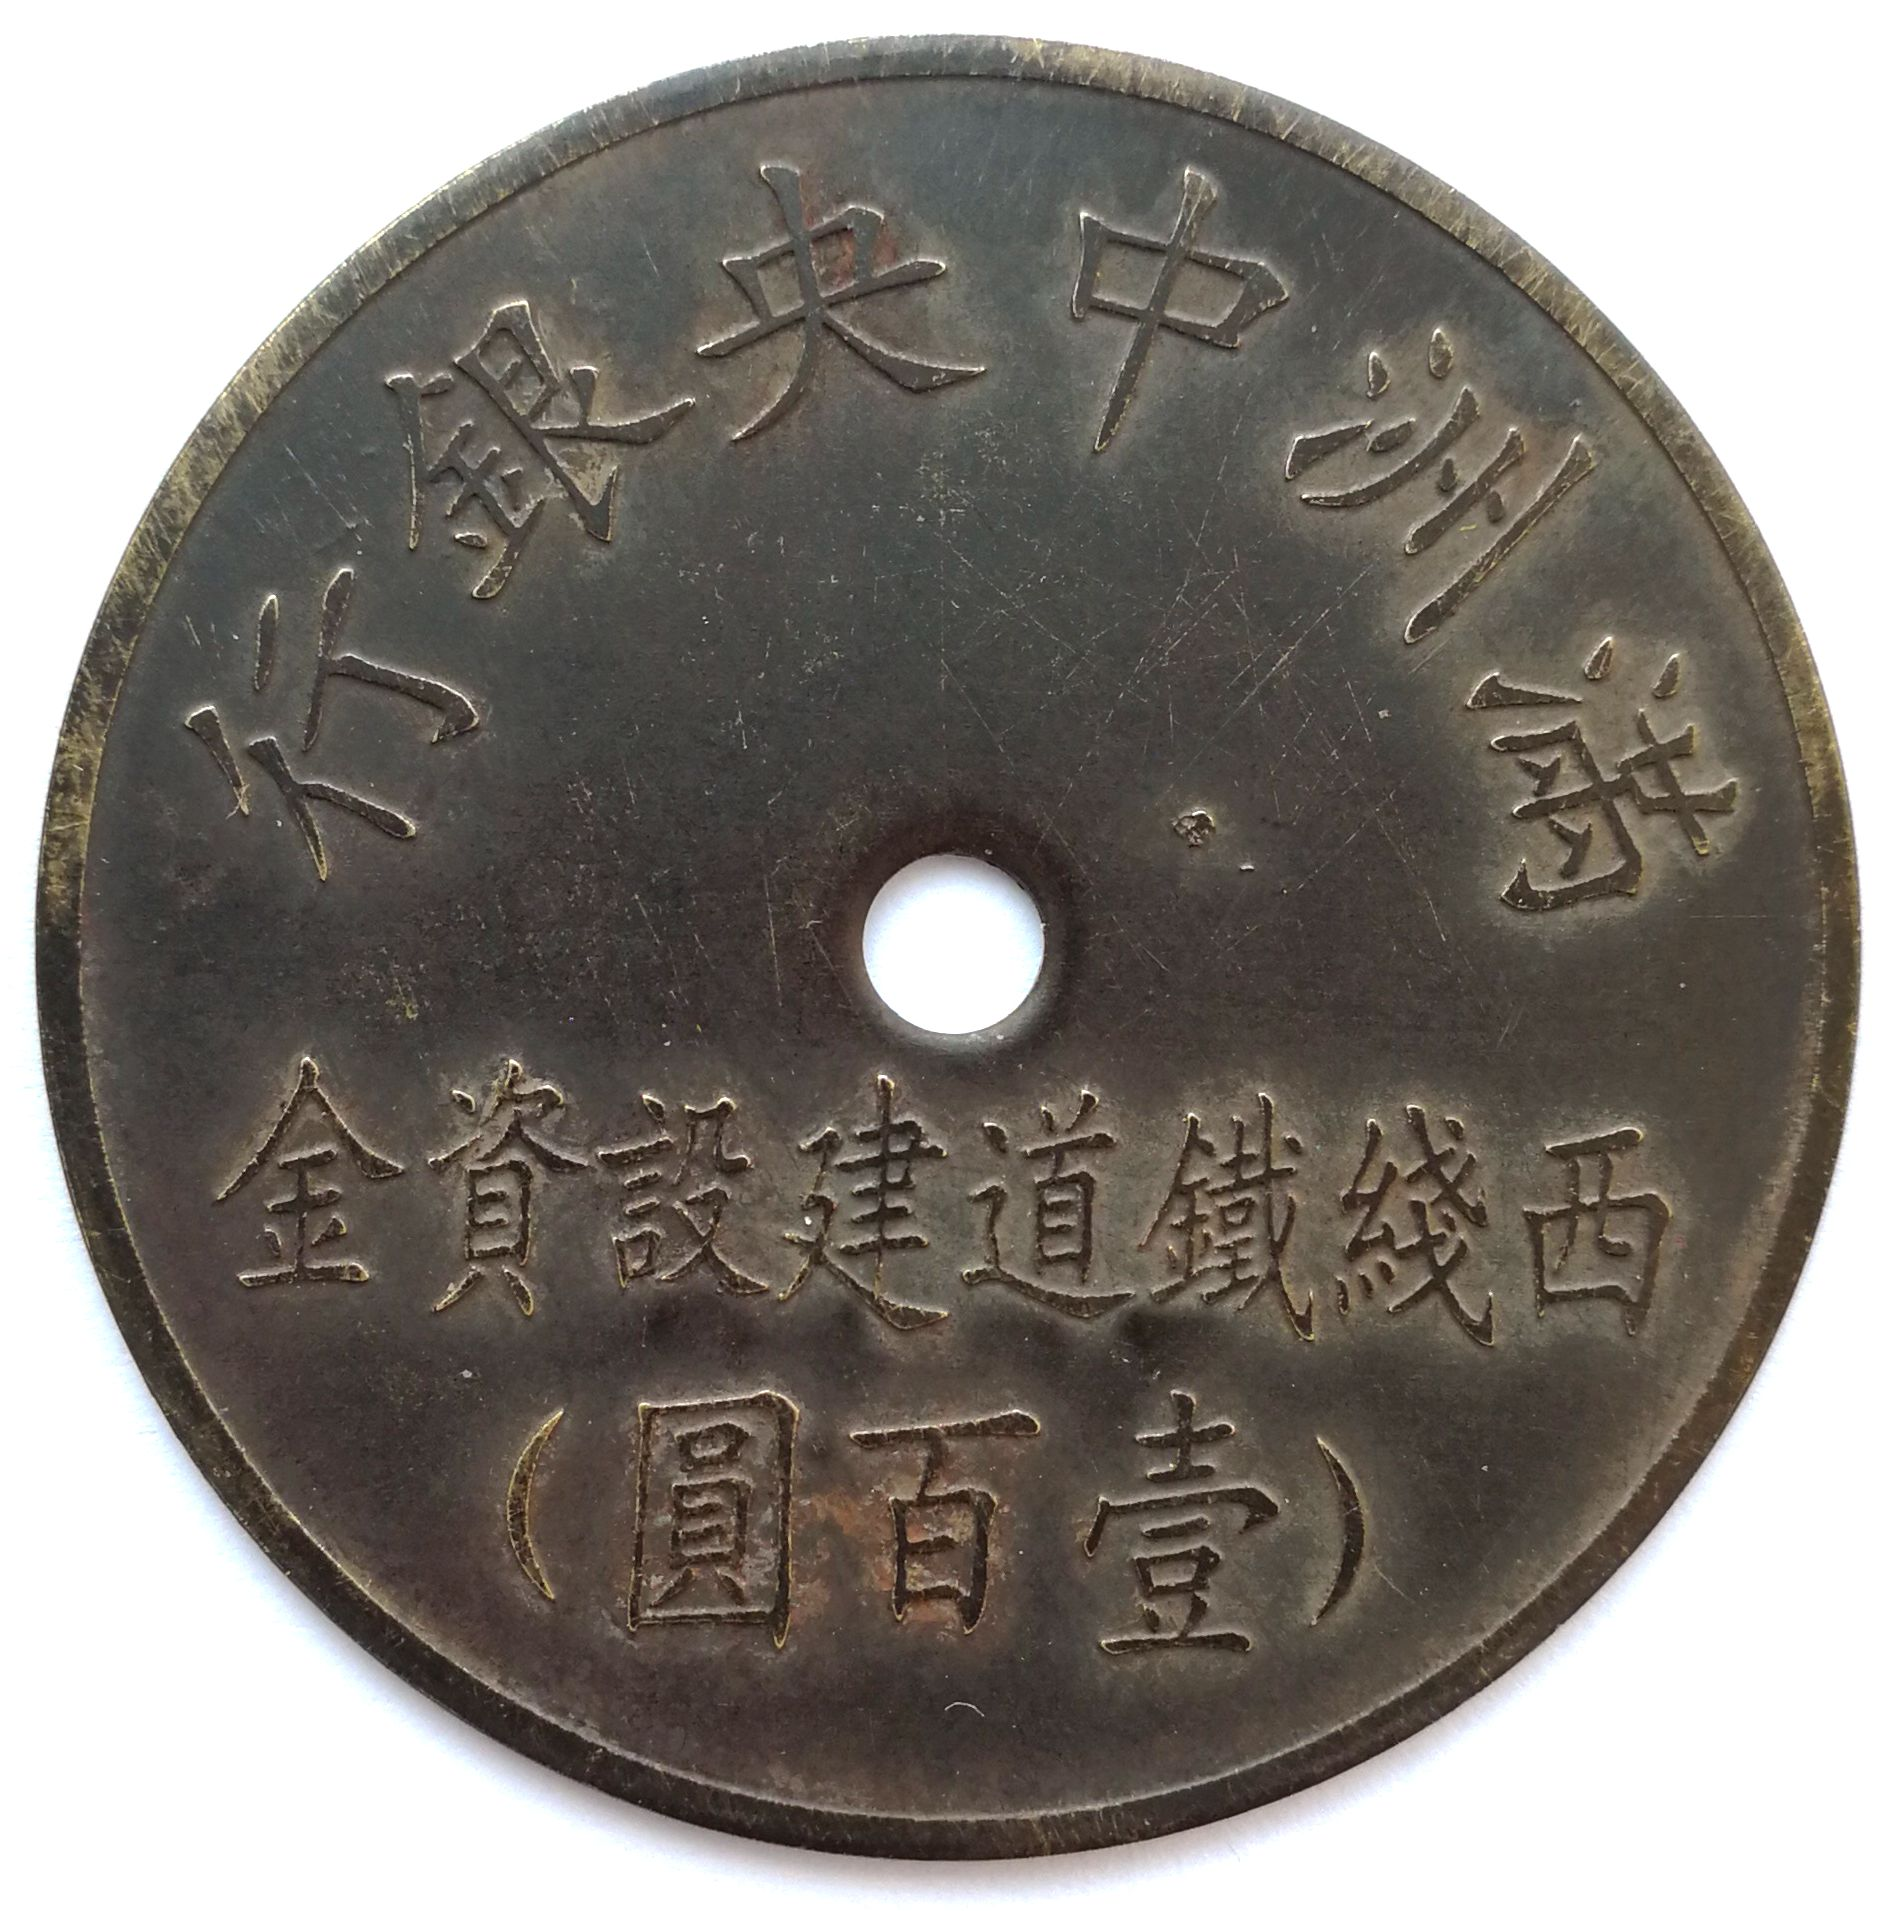 BT500, West Line Railway Construction Fund, Manchukuo Token, 100 Yen 1944